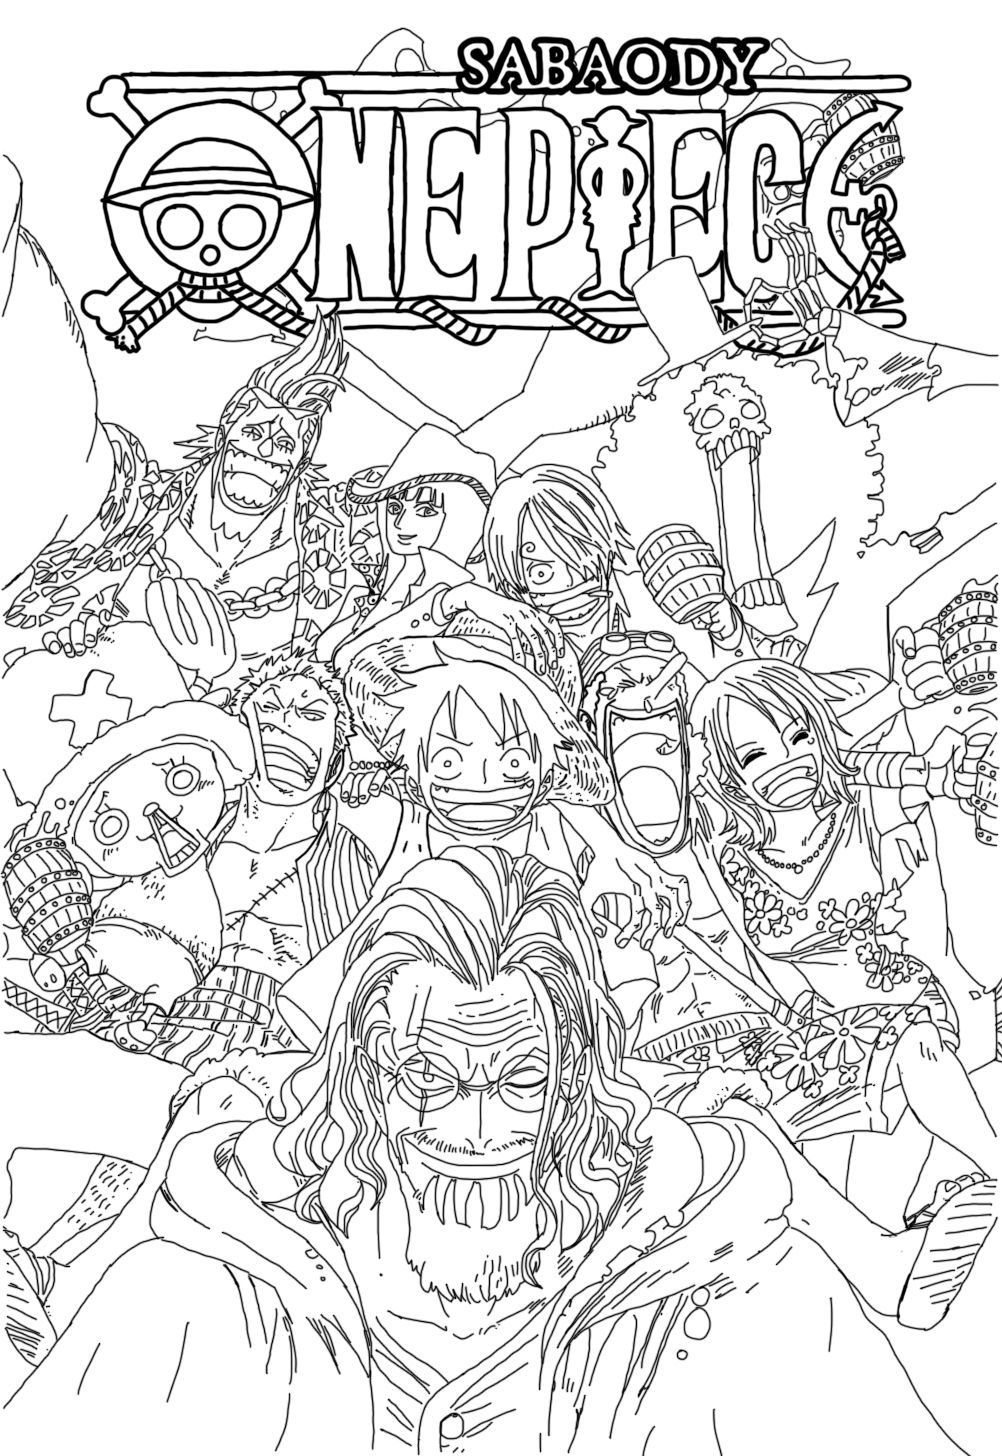 One Piece Coloring Pages : piece, coloring, pages, Piece, Drawing, Ideas, Drawing,, Piece,, Anime